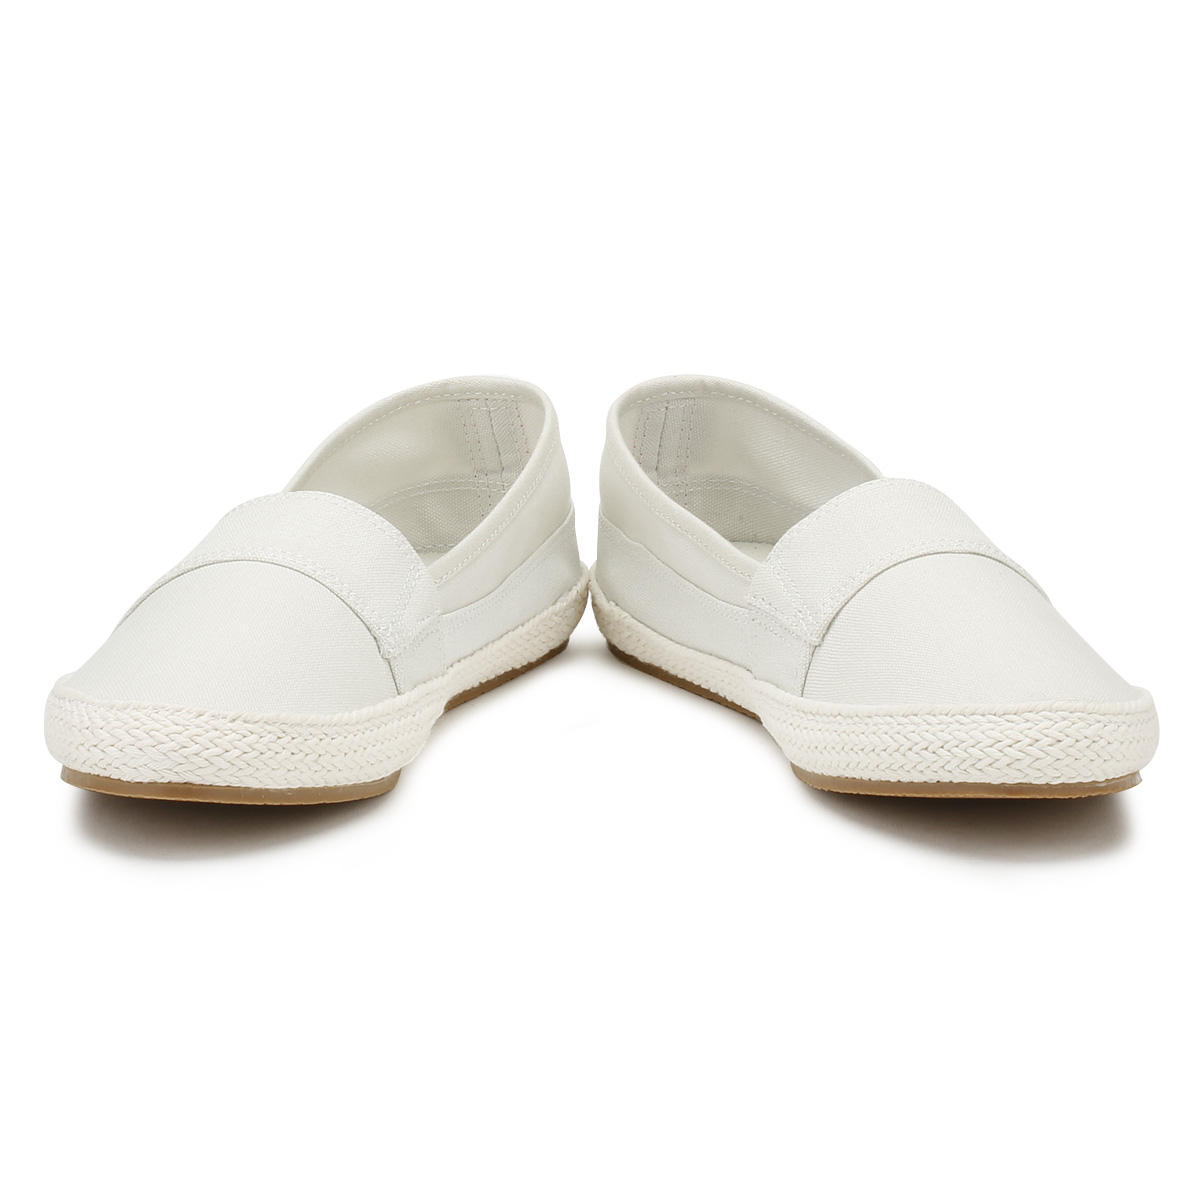 934ac7619ab69c Lacoste Womens Flats White   Pink Marice 218 1 Espadrilles Casual Shoes